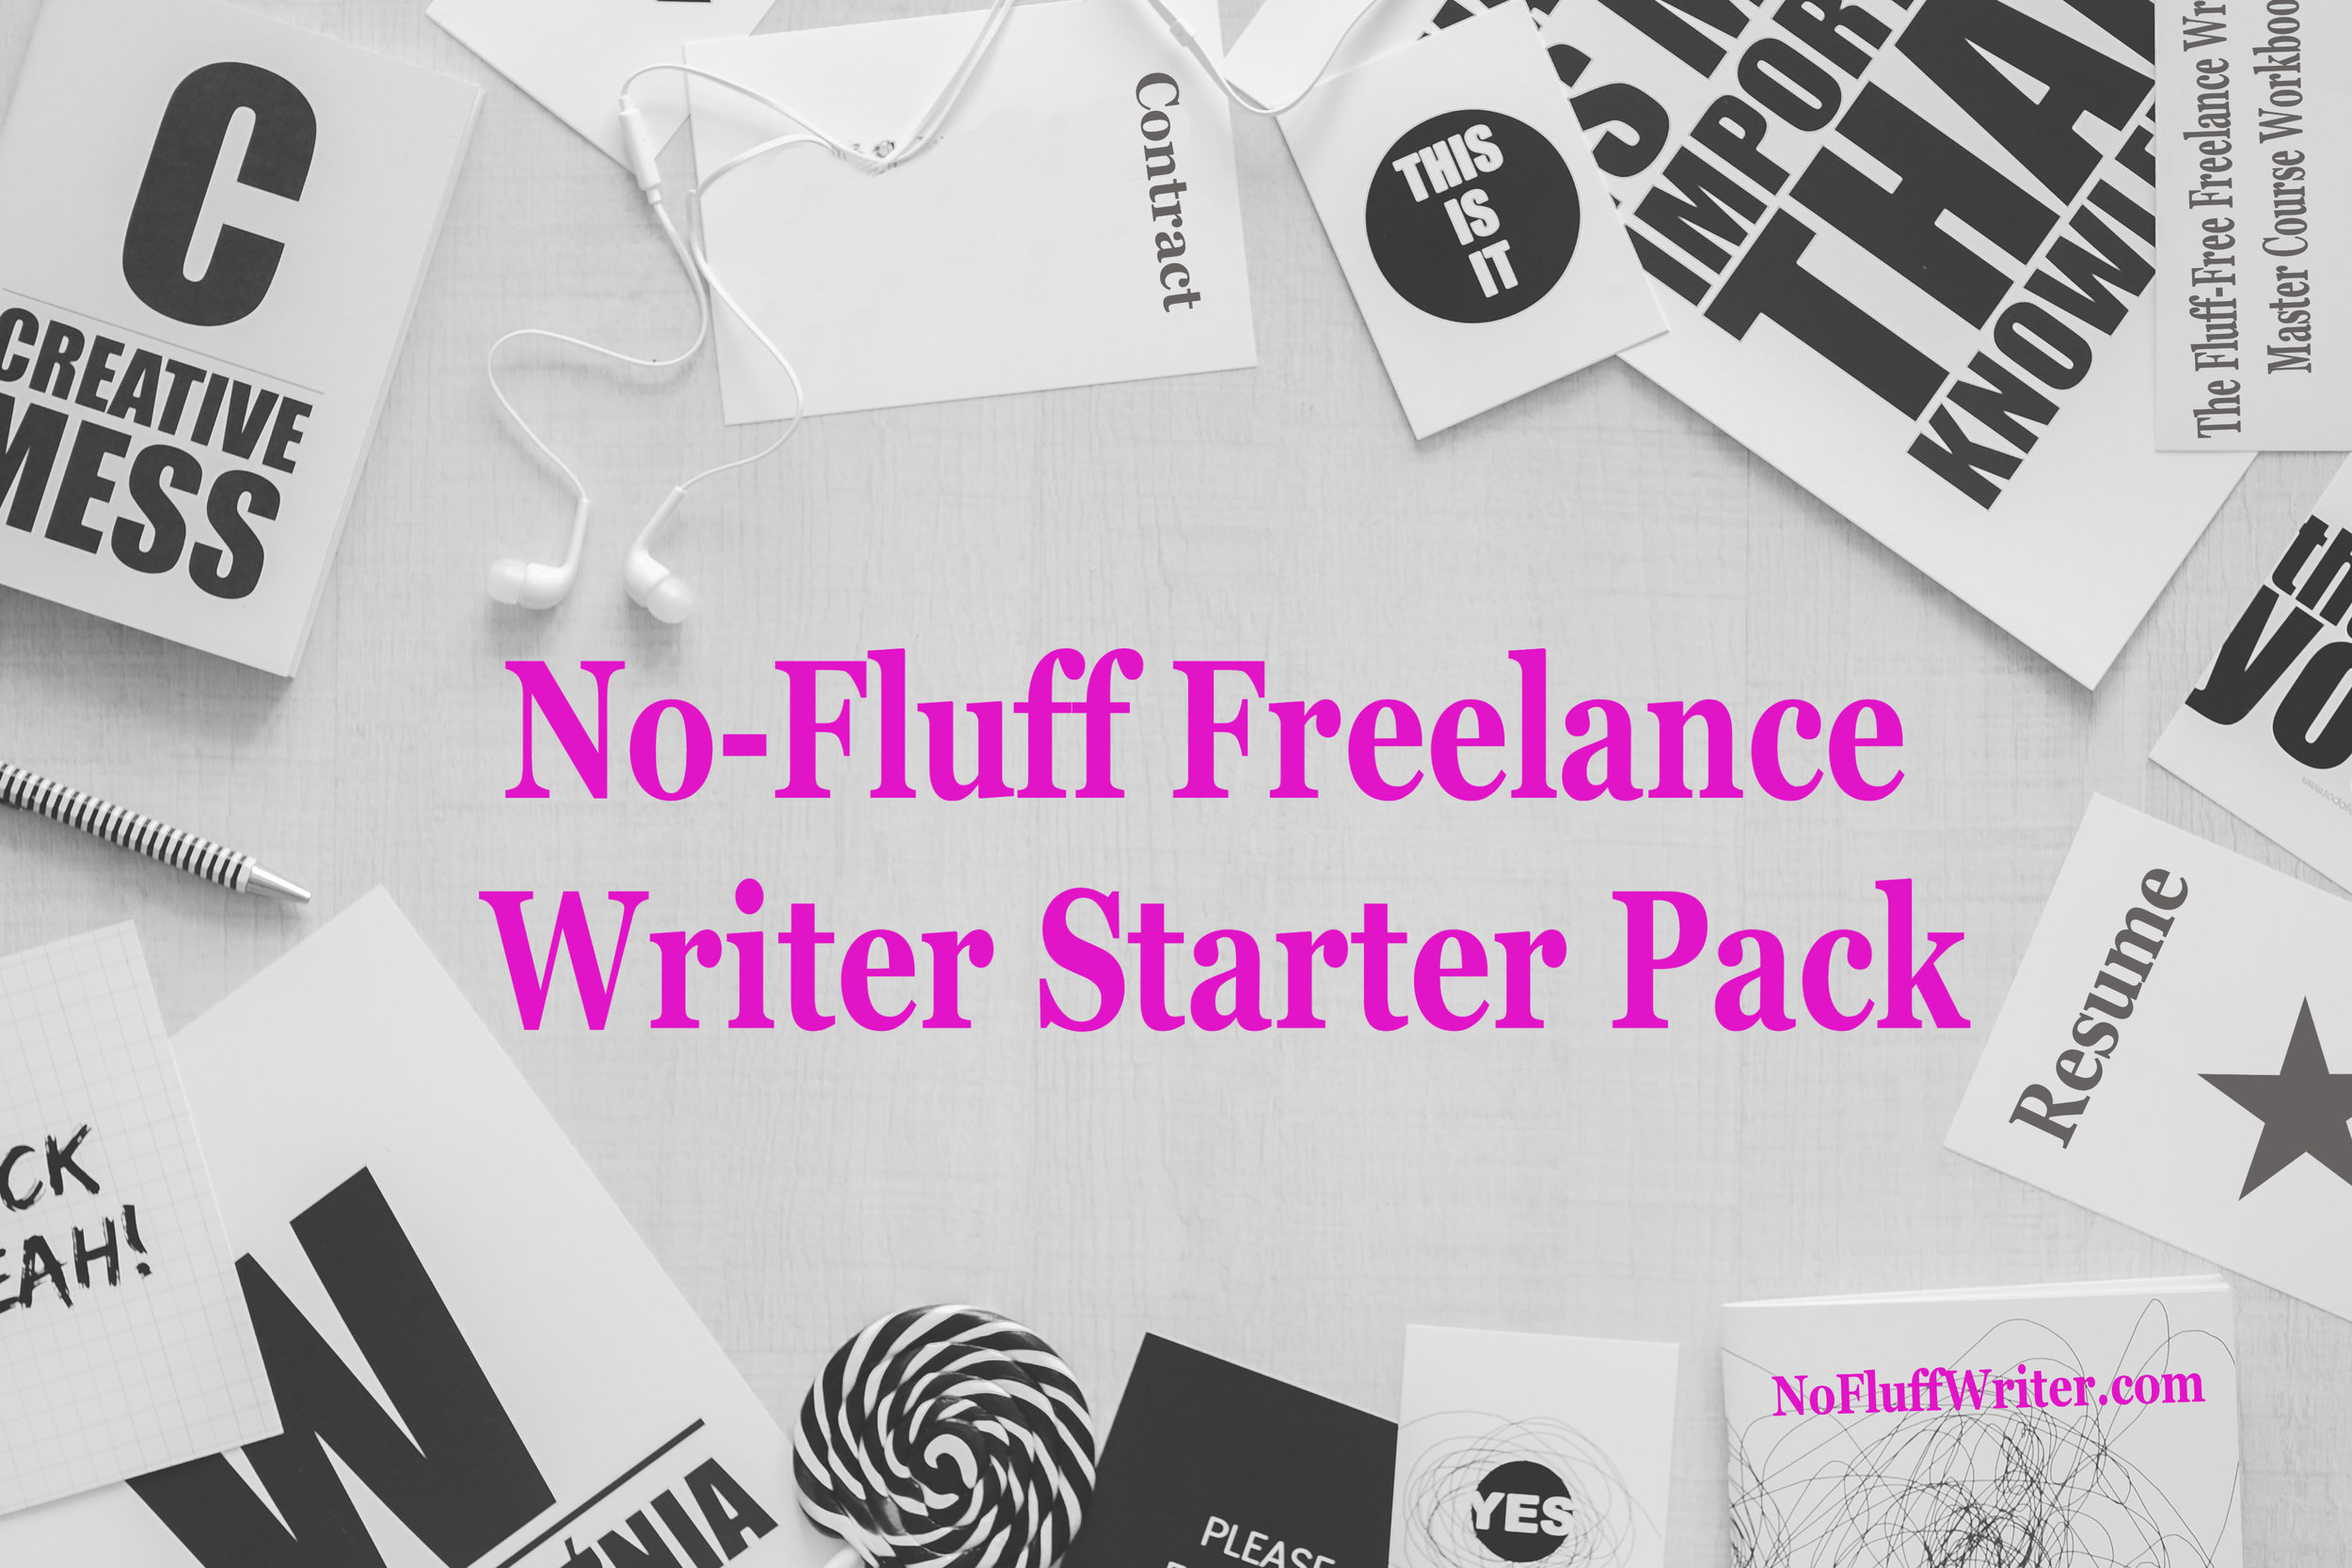 No-Fluff Freelance Writer Starter Pack.jpg